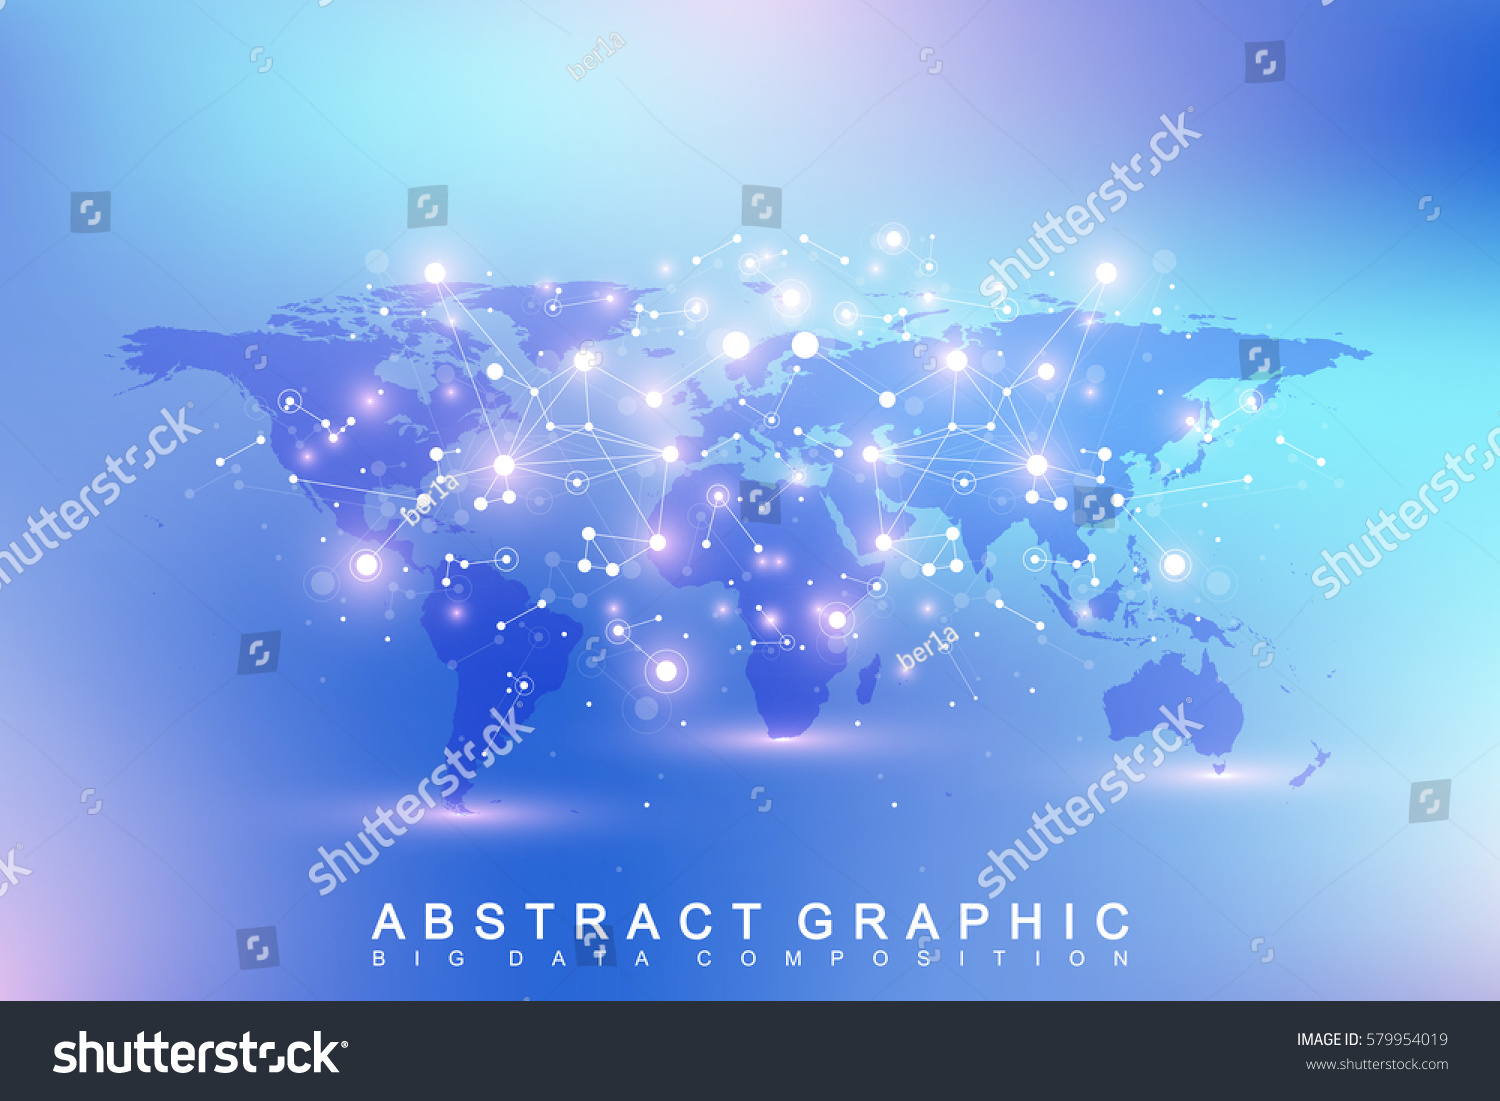 Political world map global technology networking vectores en stock political world map global technology networking vectores en stock 579954019 shutterstock gumiabroncs Image collections